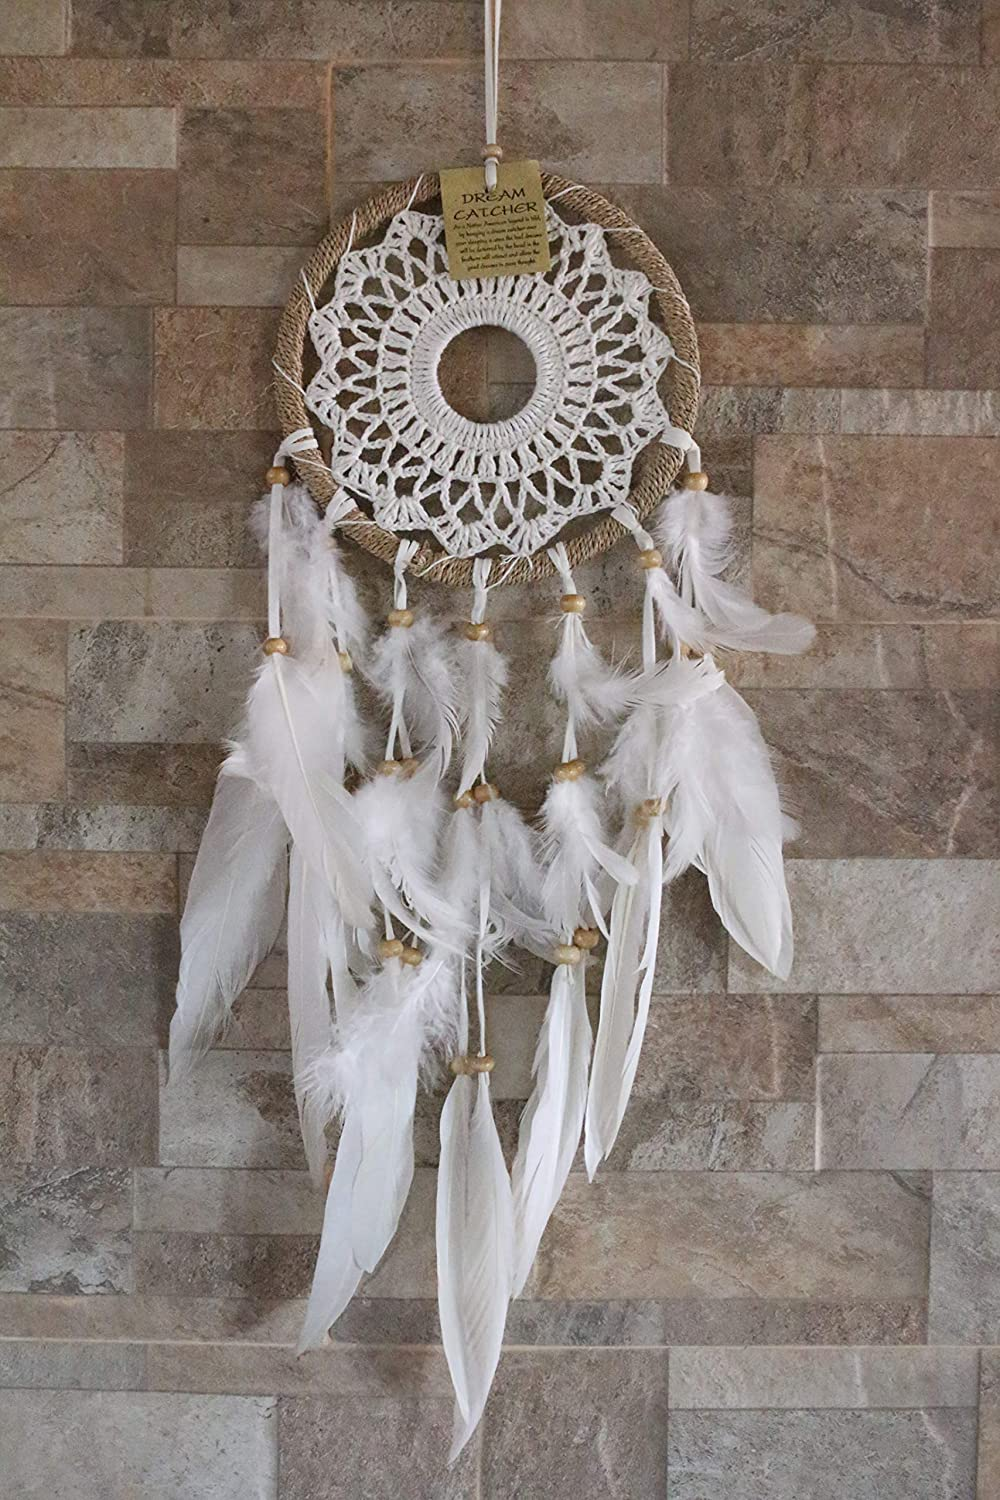 Boho Breeze Dream Catcher Boho Style//Handmade Bohemian Decor Item//Crochet Hippie Gypsy Model//Weddings//Baby Showers//Wall Hanging Decoration//Bedroom or Living Room Ornament//Exquisite Feathers